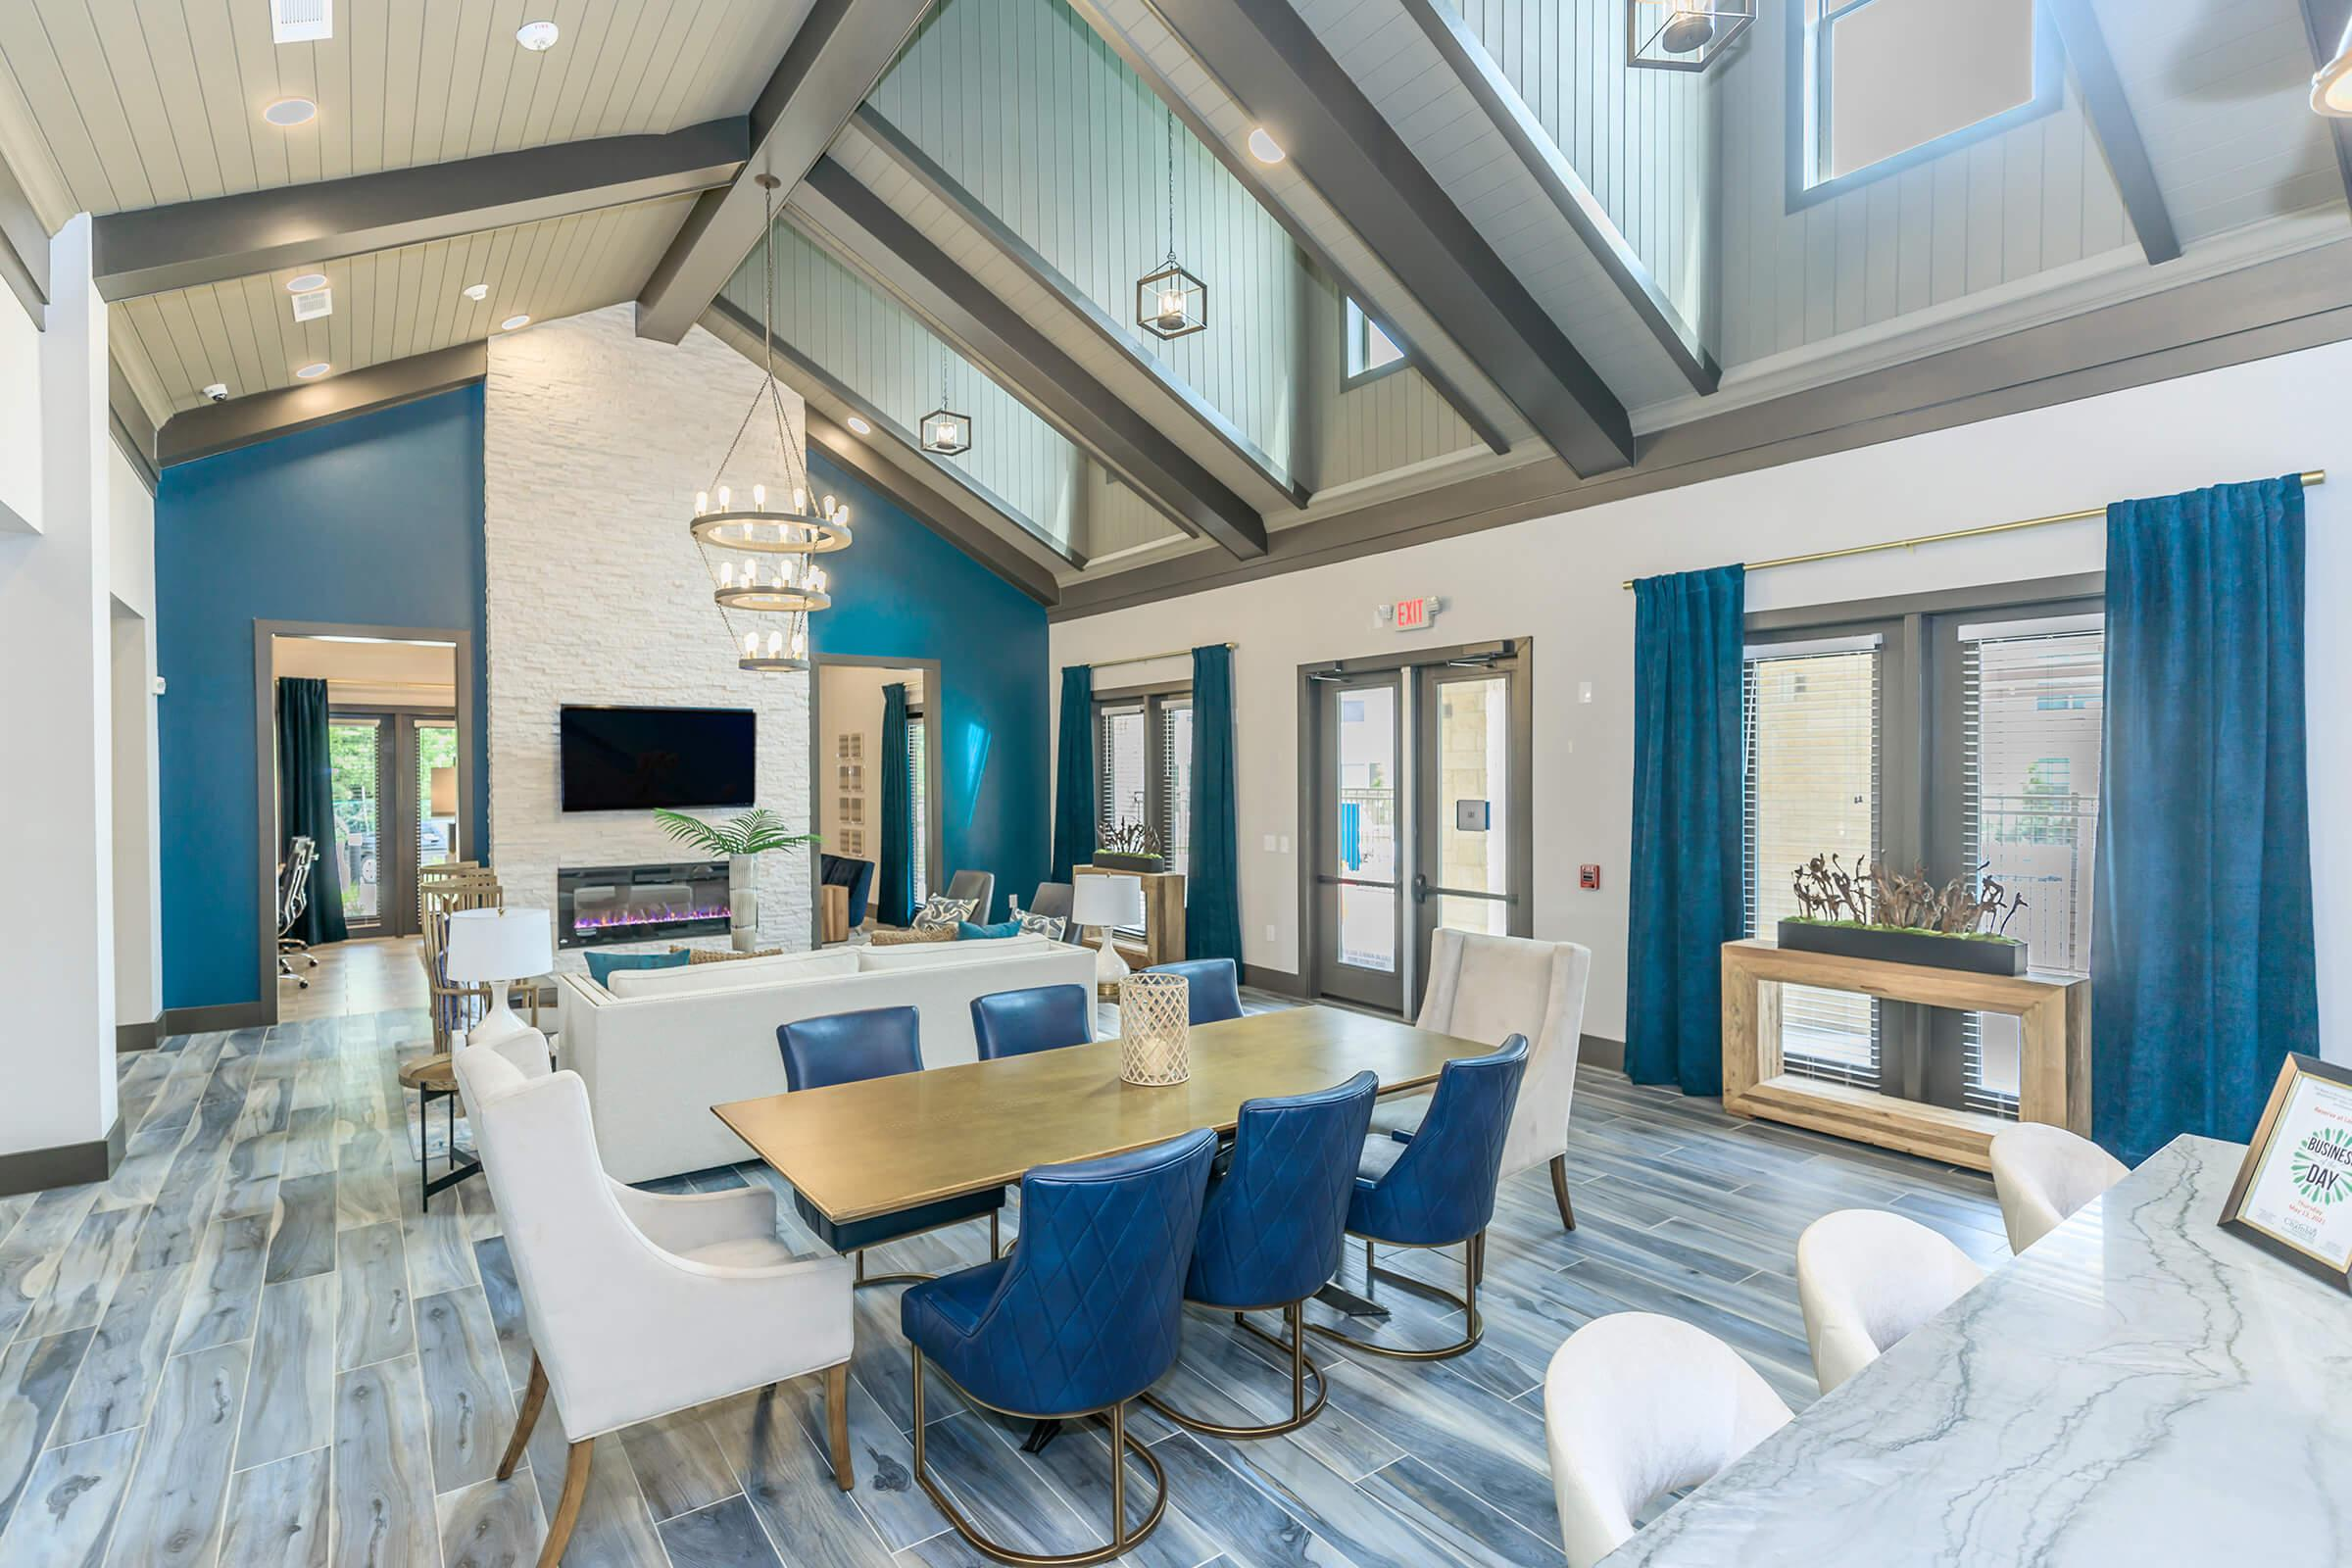 LUXURIOUS AND MODERN CLUBHOUSE